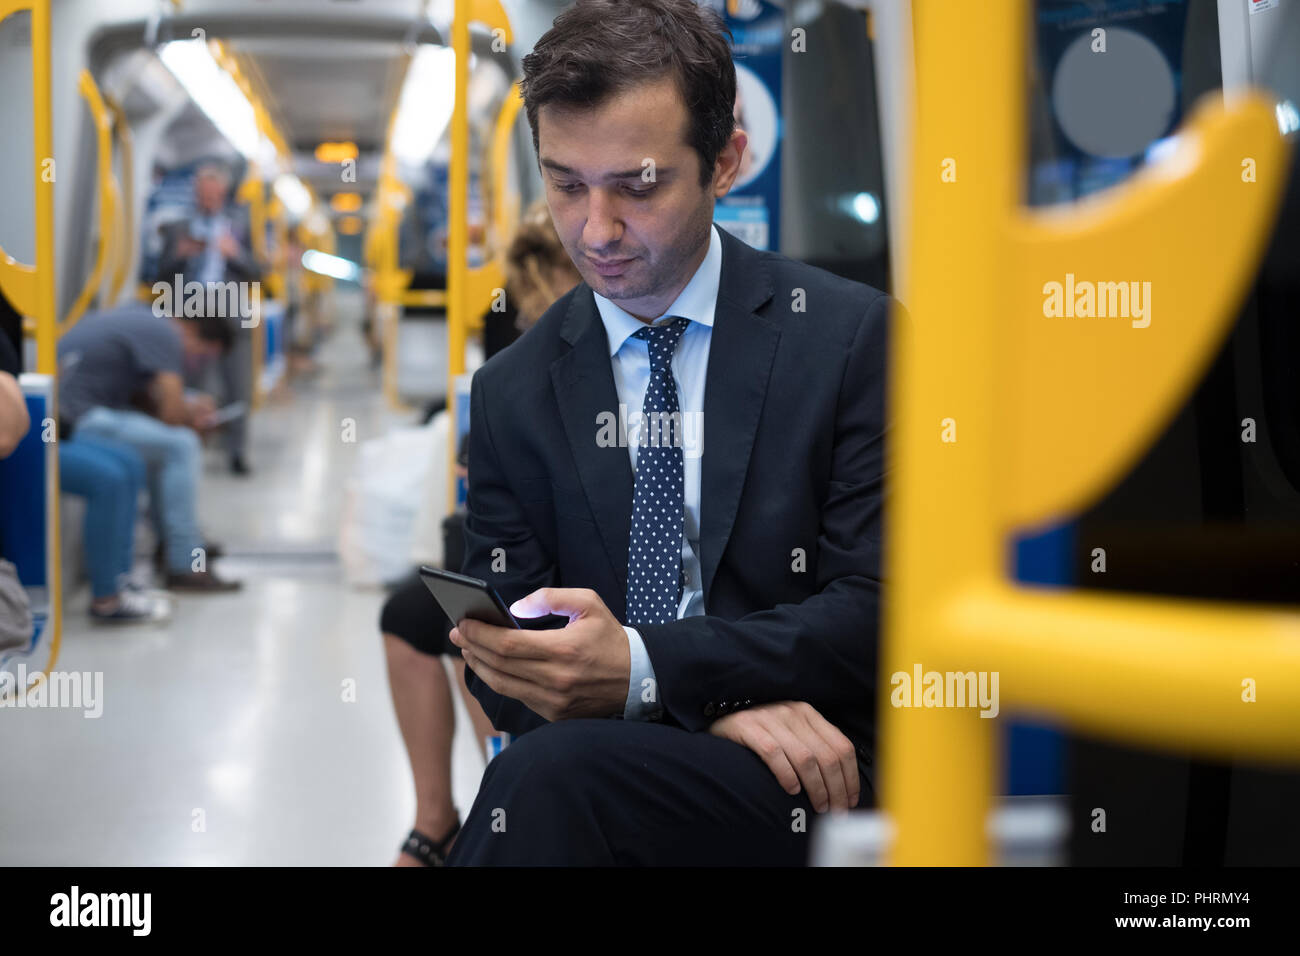 Commuter on underground is going to work - Stock Image